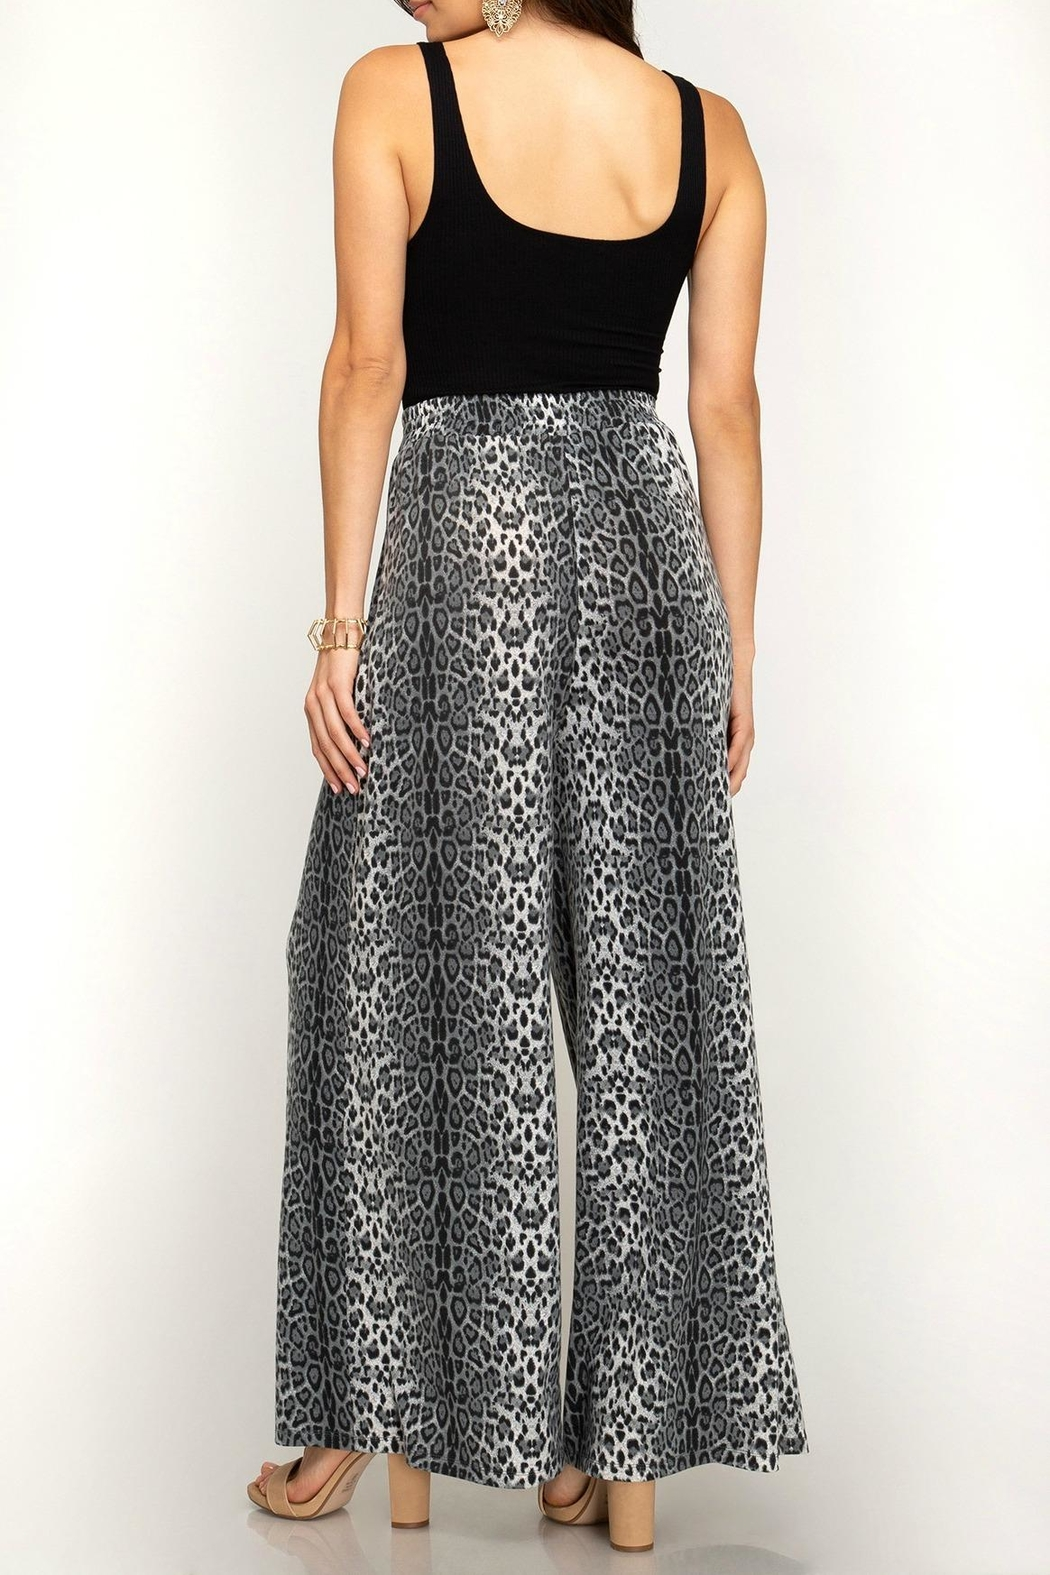 She + Sky Leopard Palazzo Pants - Front Full Image